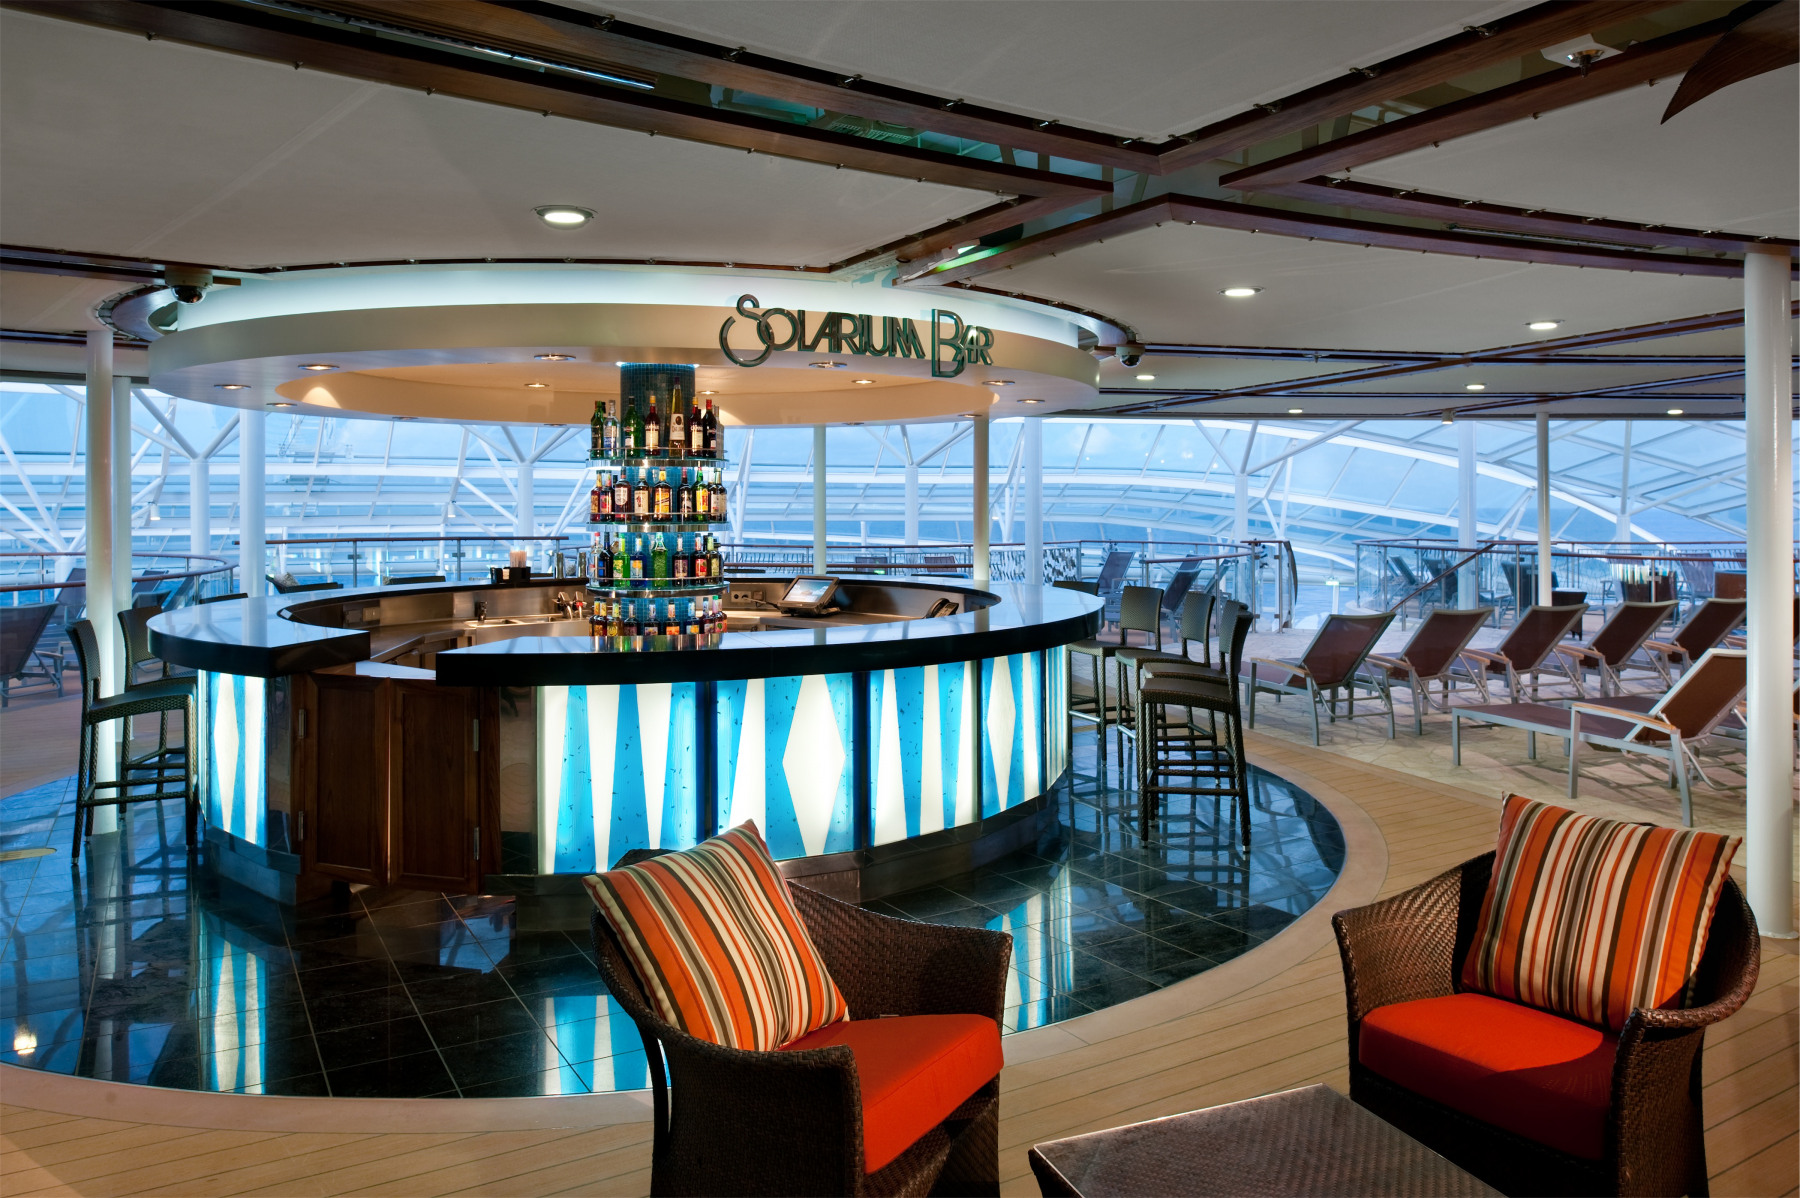 Royal Caribbean International Oasis of the Seas Interior Solarium Bar.jpg